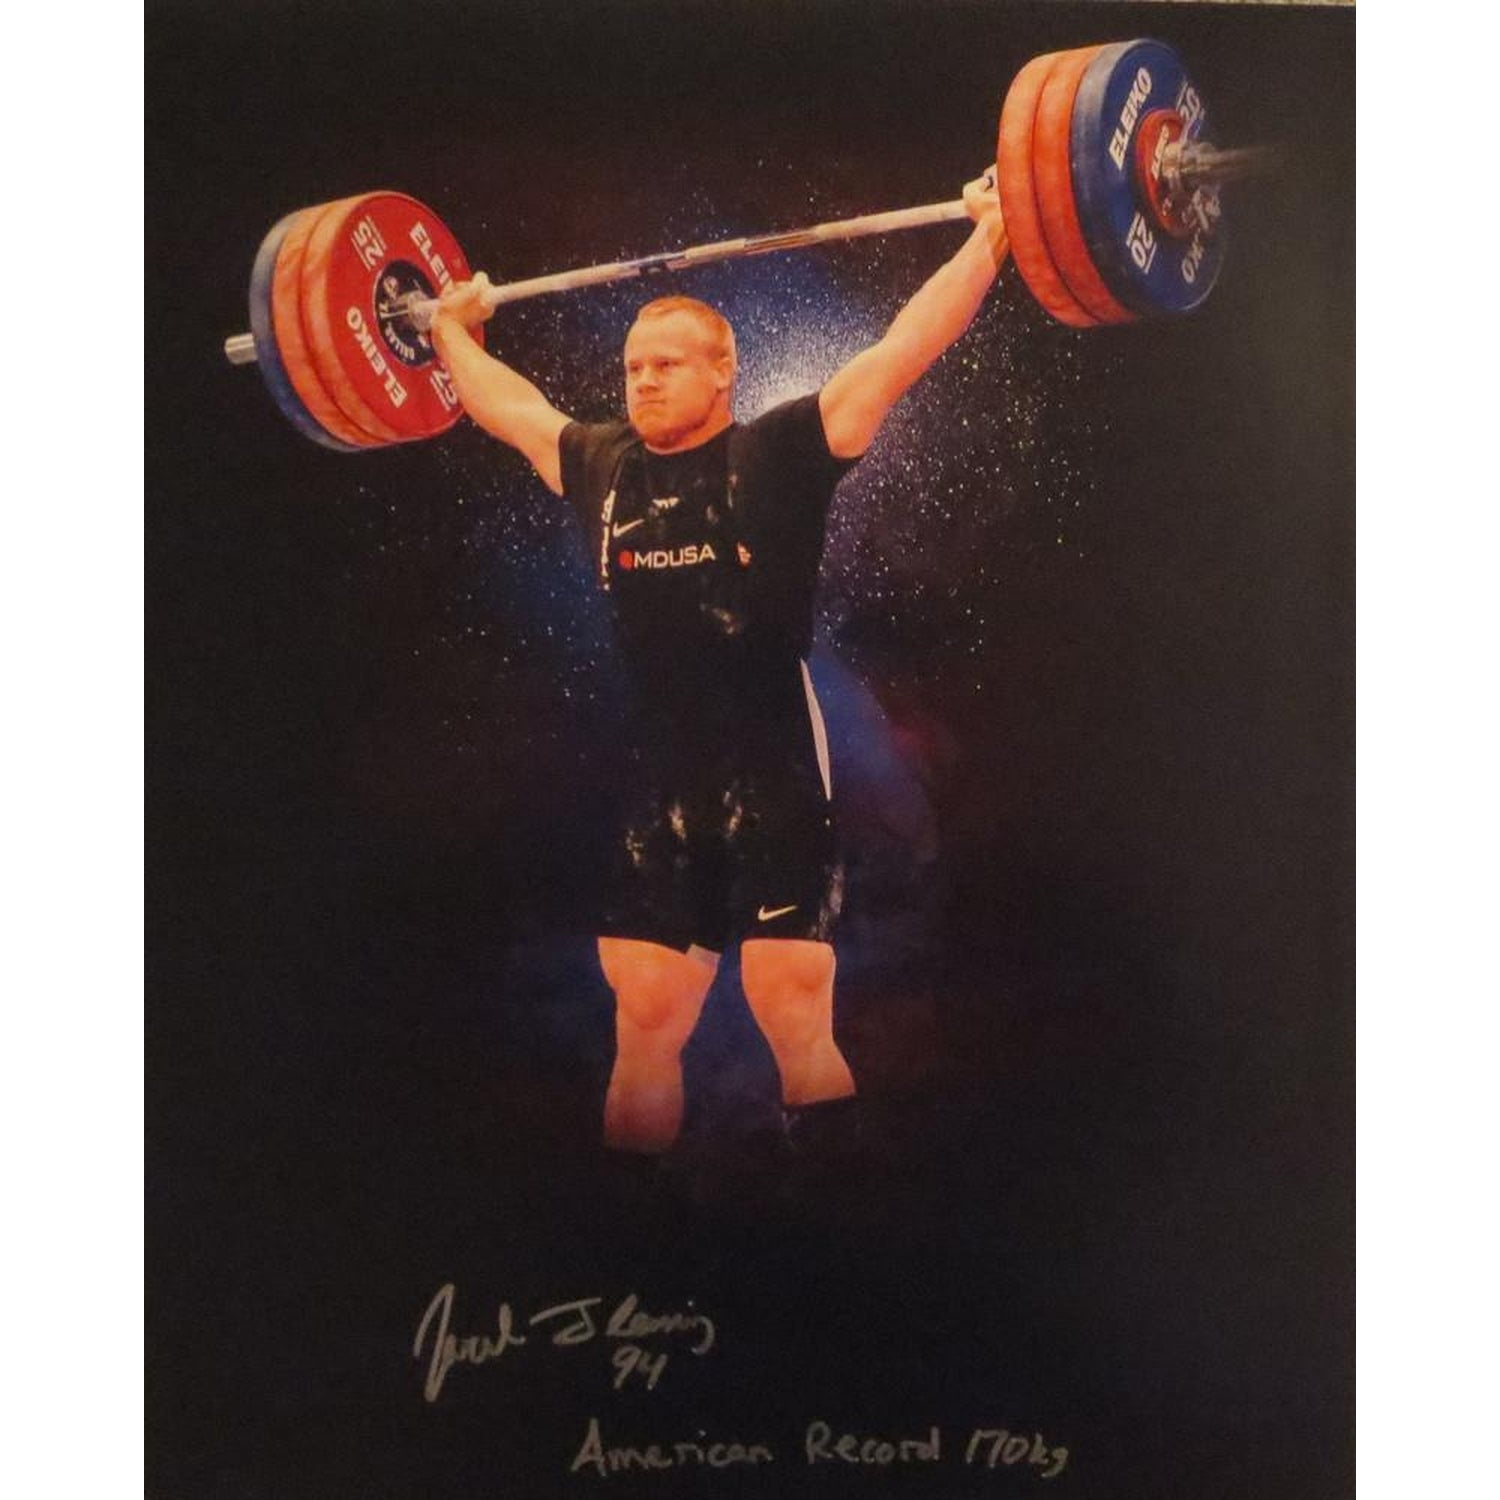 Jared Fleming Autographed USA Weightlifting American Record 170 Snatch Signed 16x20 Photo 2-Powers Sports Memorabilia